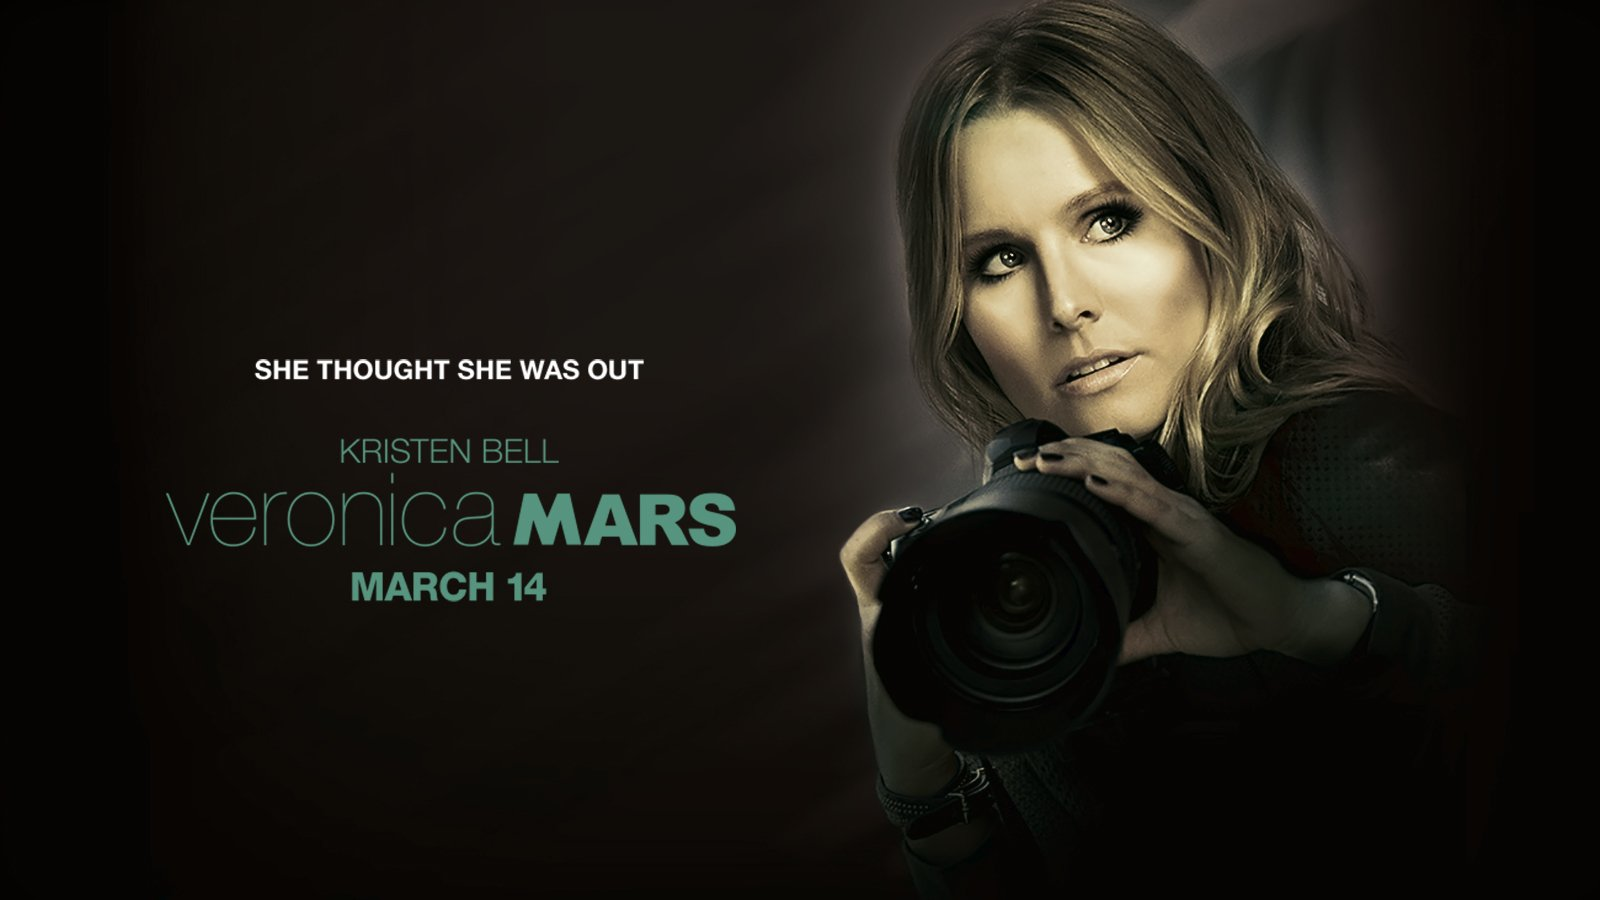 Veronica Mars Wallpaper and Background Image 1600x900 ID 1600x900